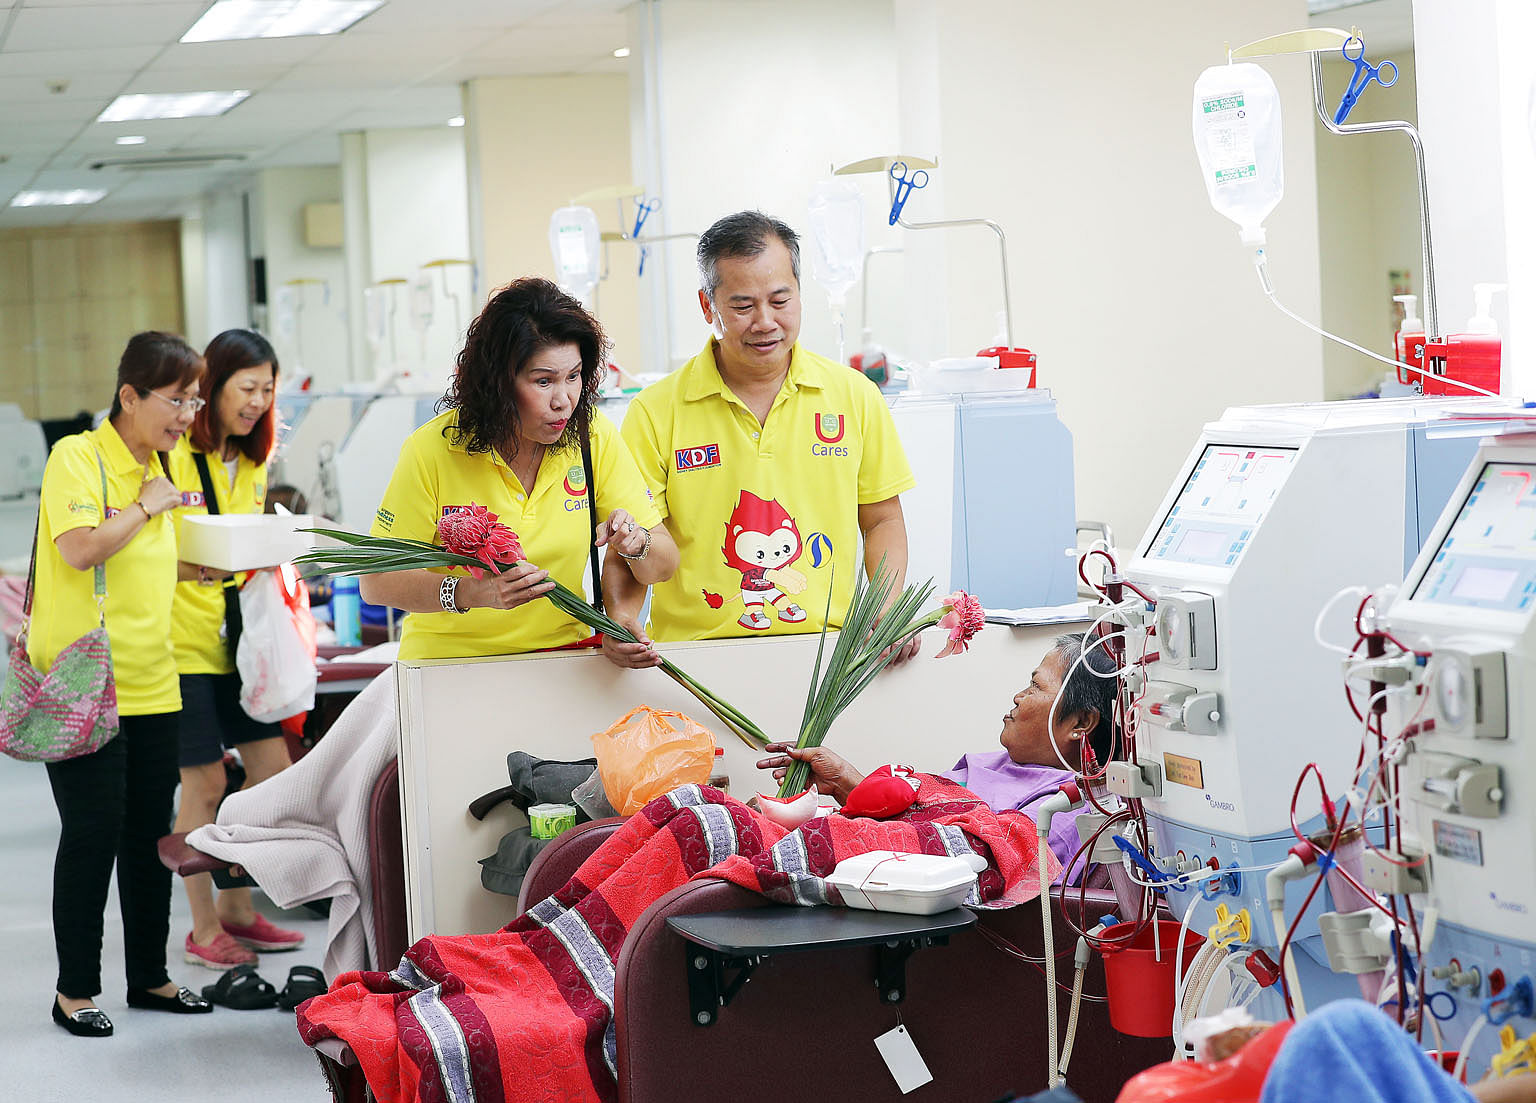 Ms Nancy Khoo and Mr Johnson Ong visiting Madam Ruhaya Mohd Noor, 58, who is receiving dialysis at the Kidney Dialysis Foundation.